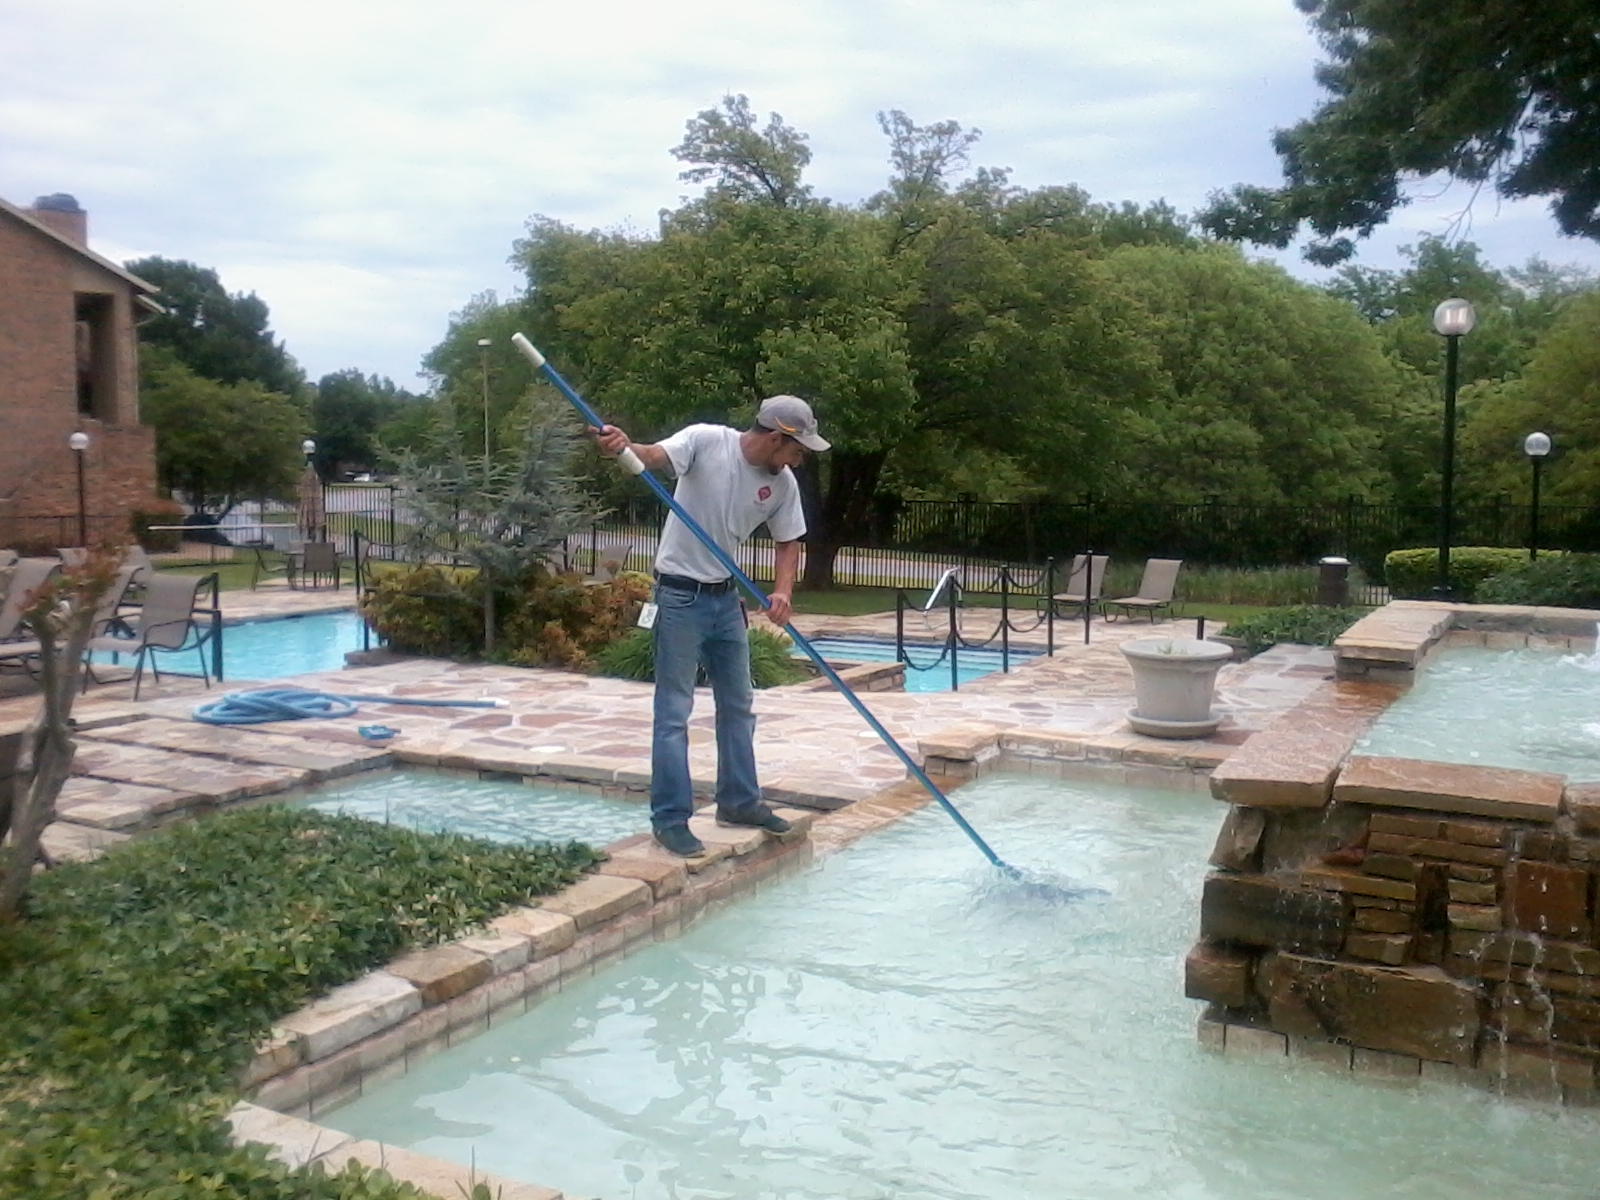 Pool Cleaning And Maintenance top 3 reasons to hire a pool cleaning service